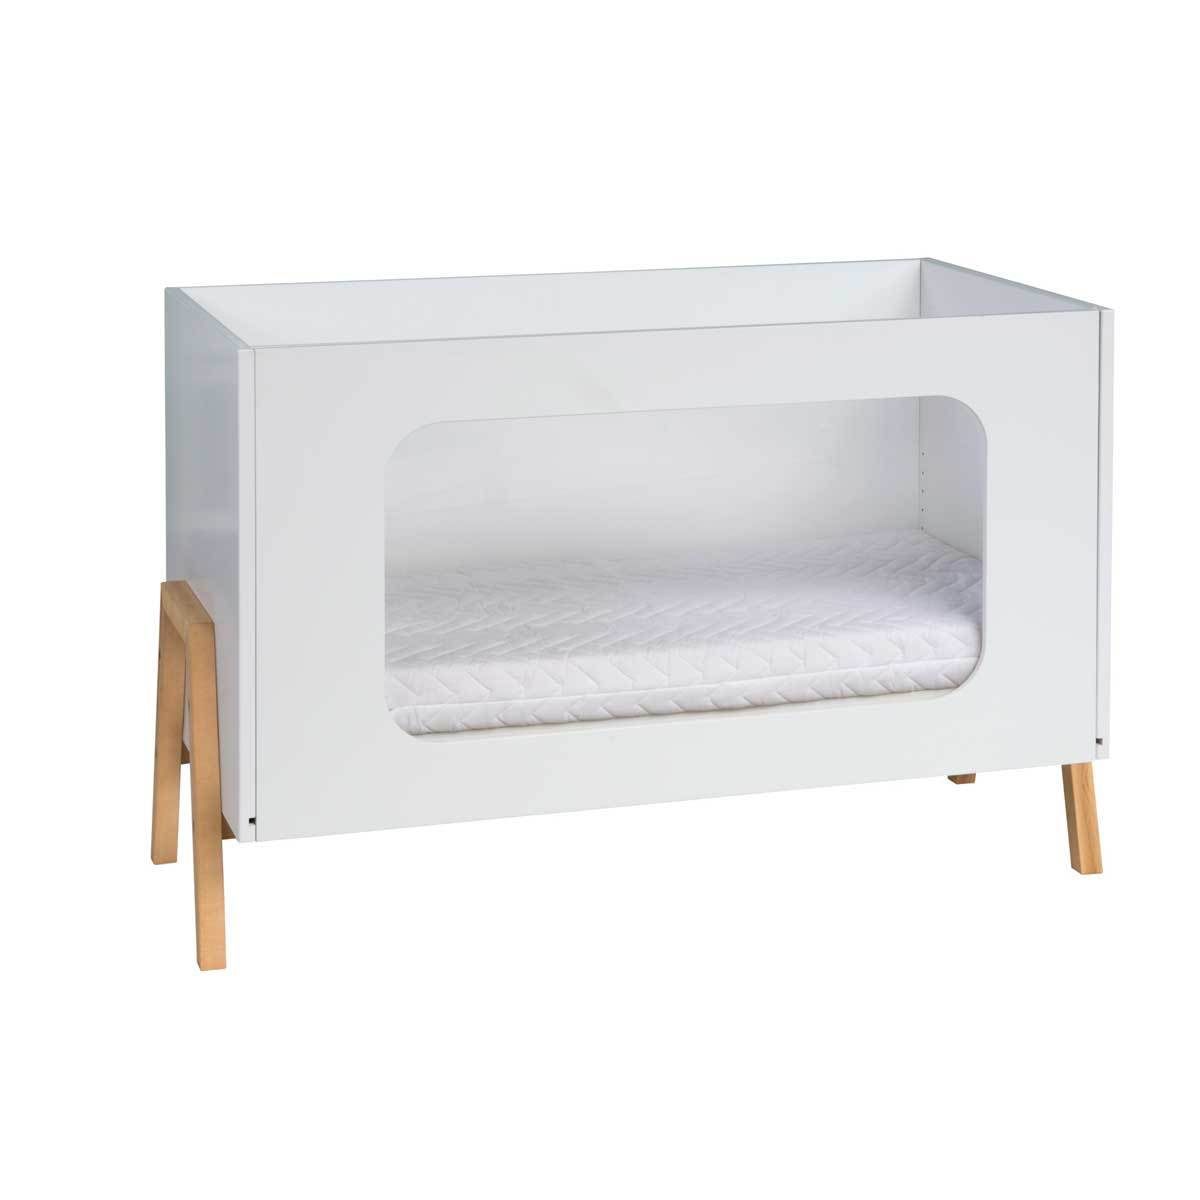 Lit b b 60 x 120 cm holly nature 039200201 achat - Lit enfant ajustable ...